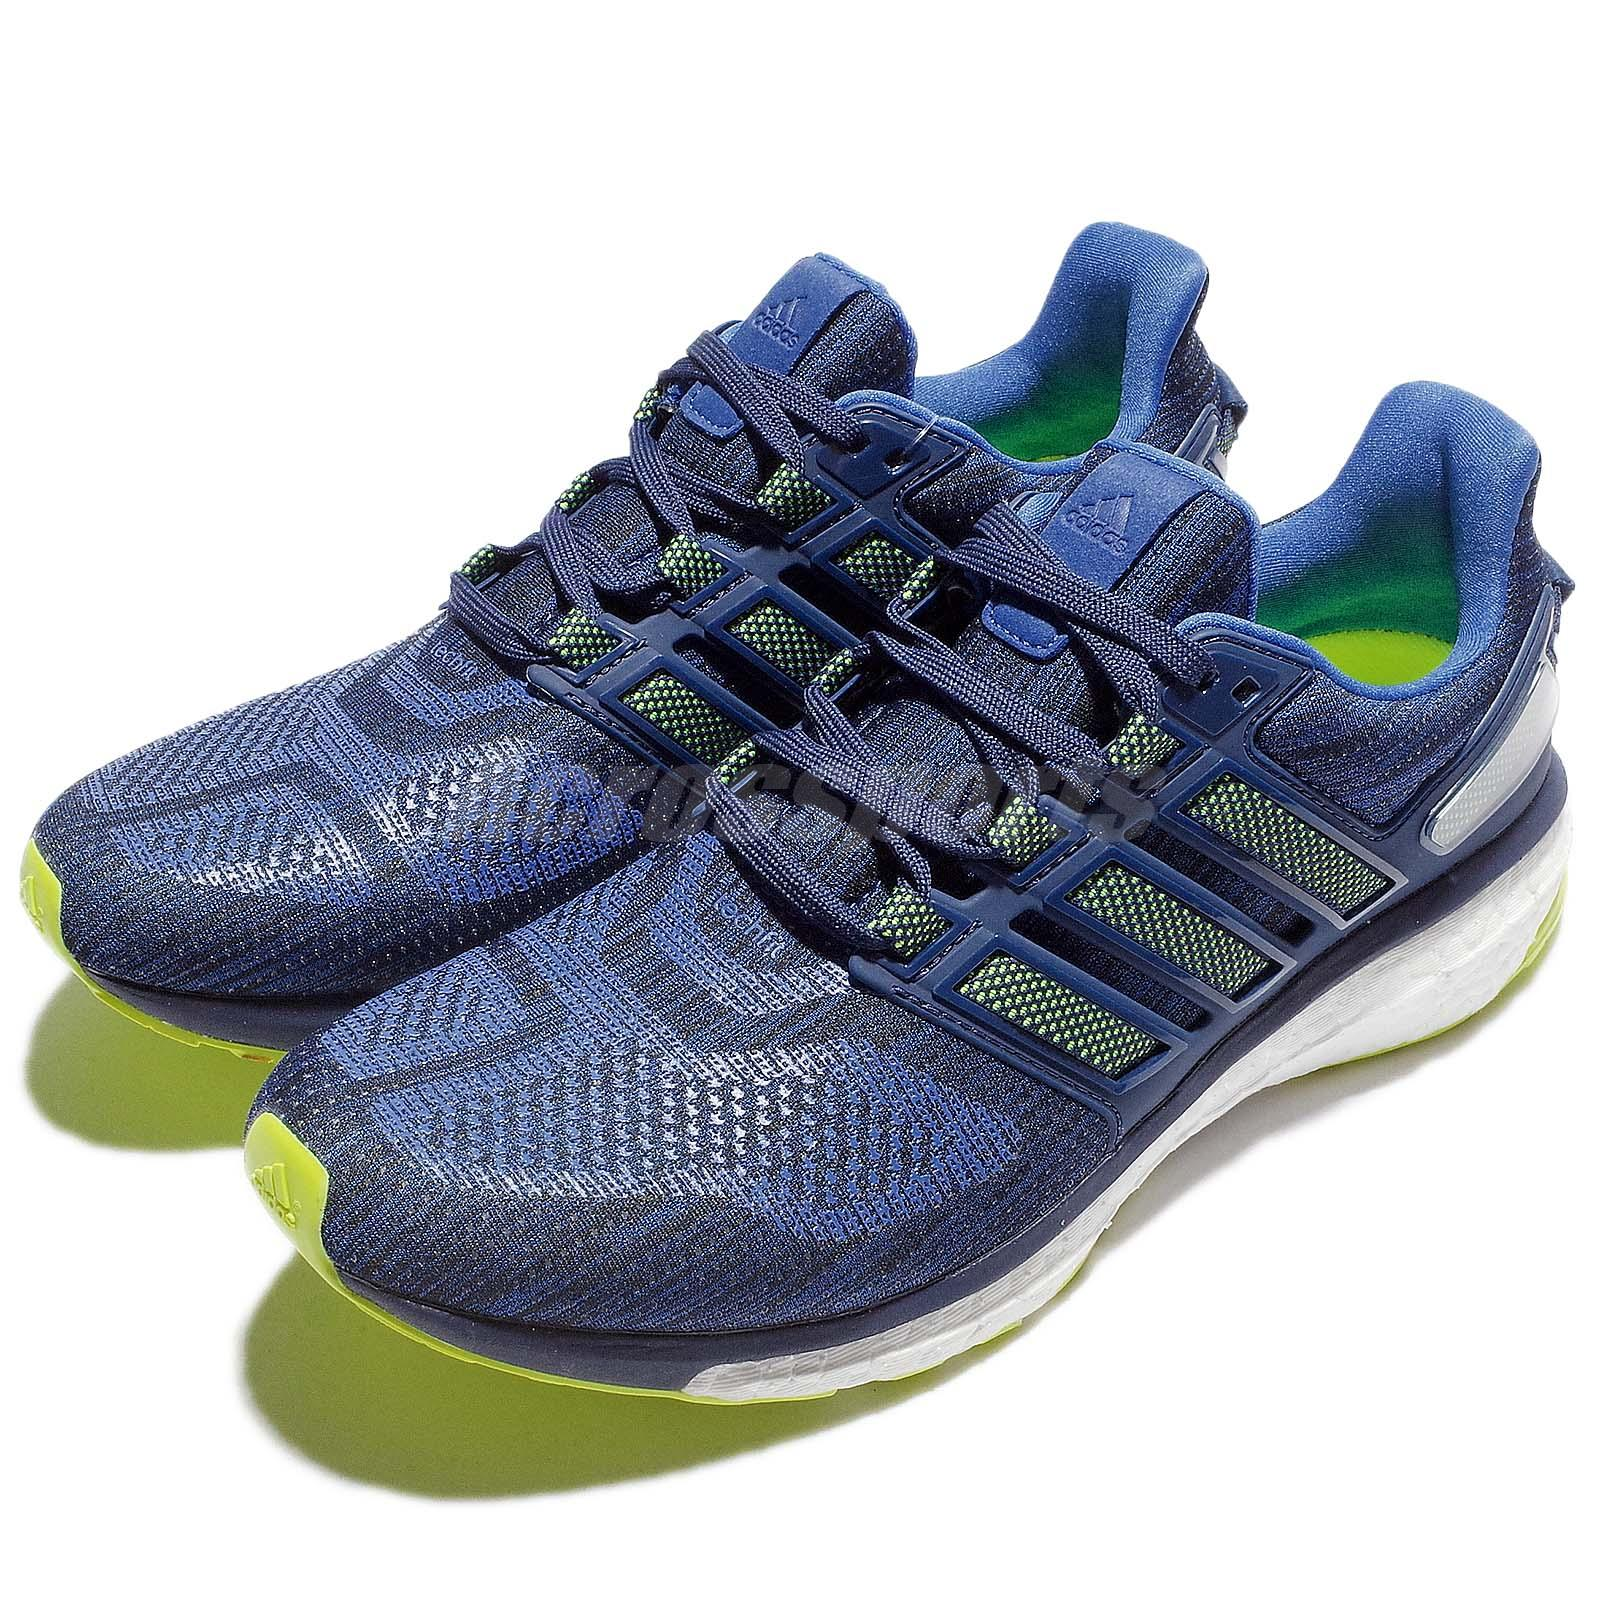 adidas energy boost 3 m blue green mens running shoes